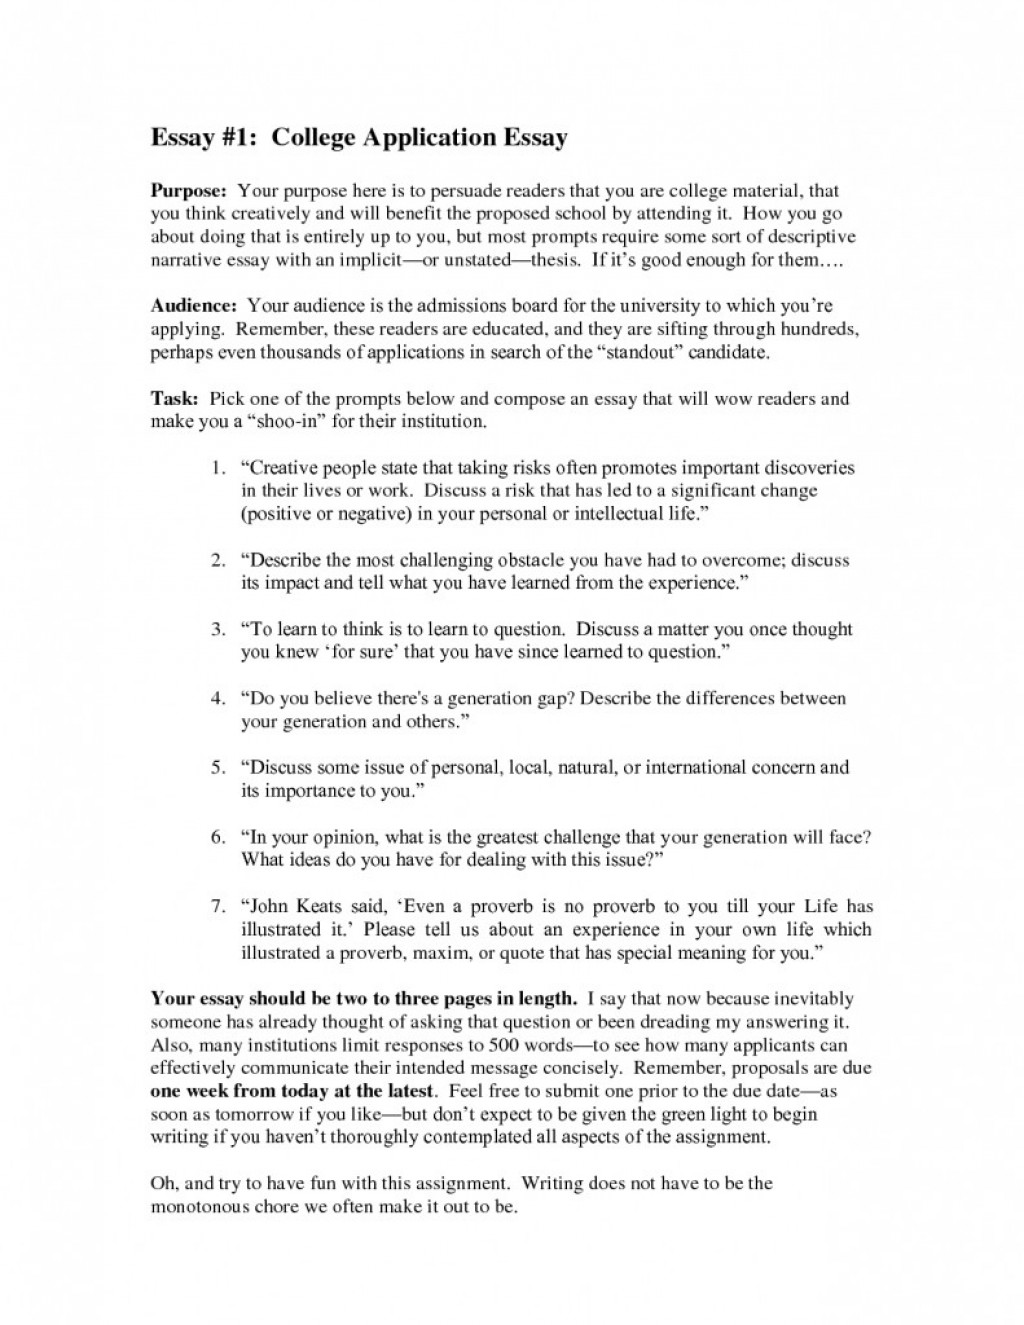 013 Uc Application Essay Prompts Example College Imposing 2015 2016-17 Examples Berkeley Large